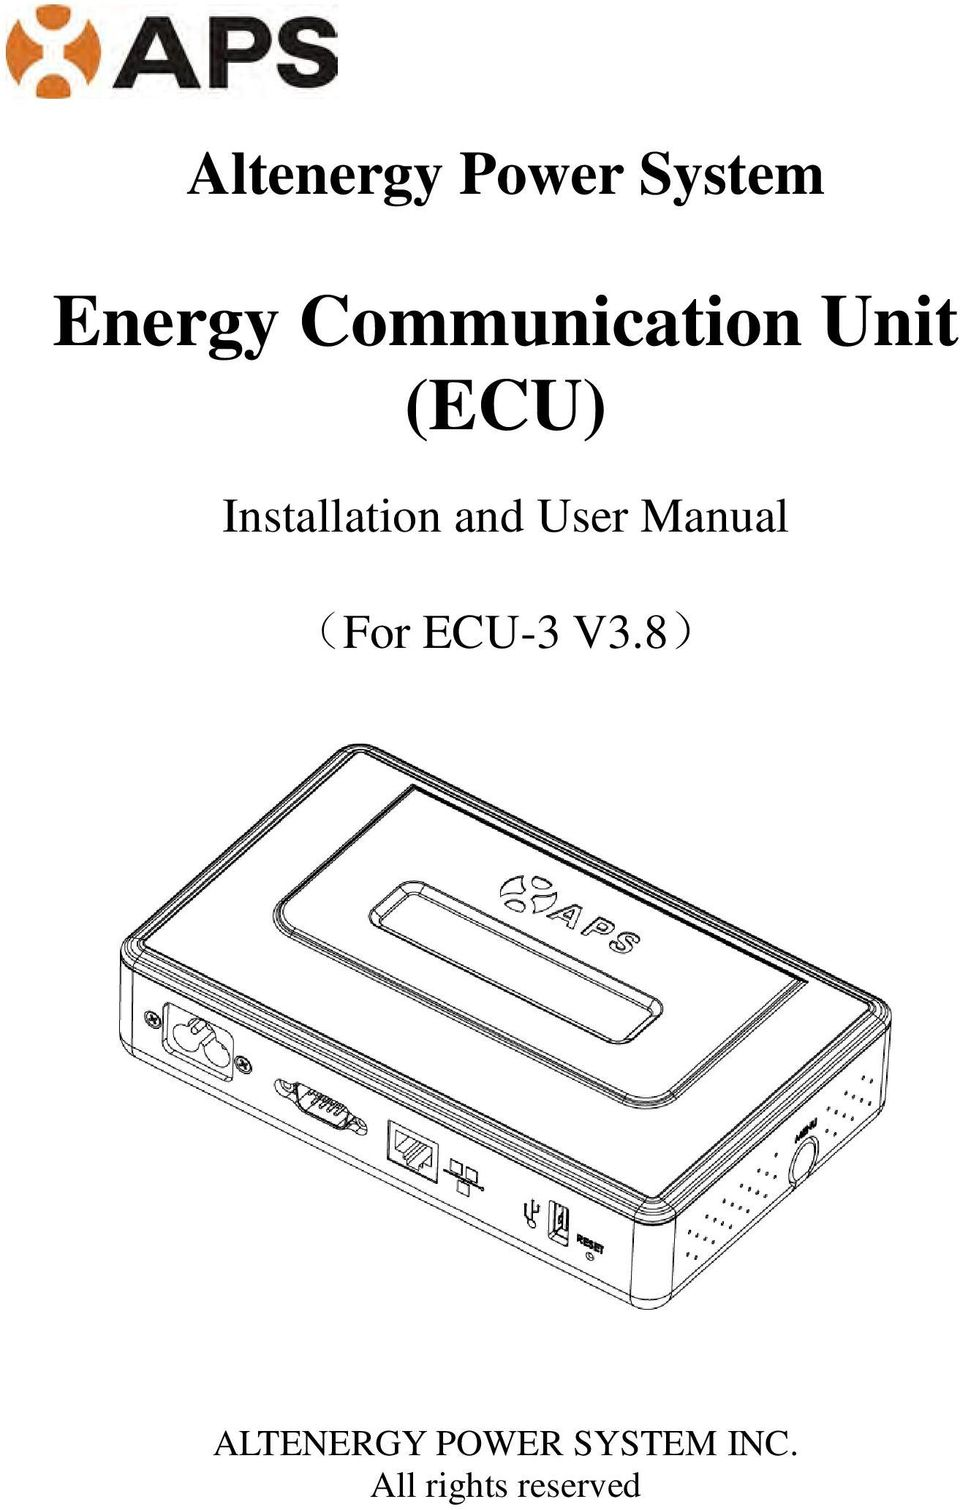 Installation and User Manual (For